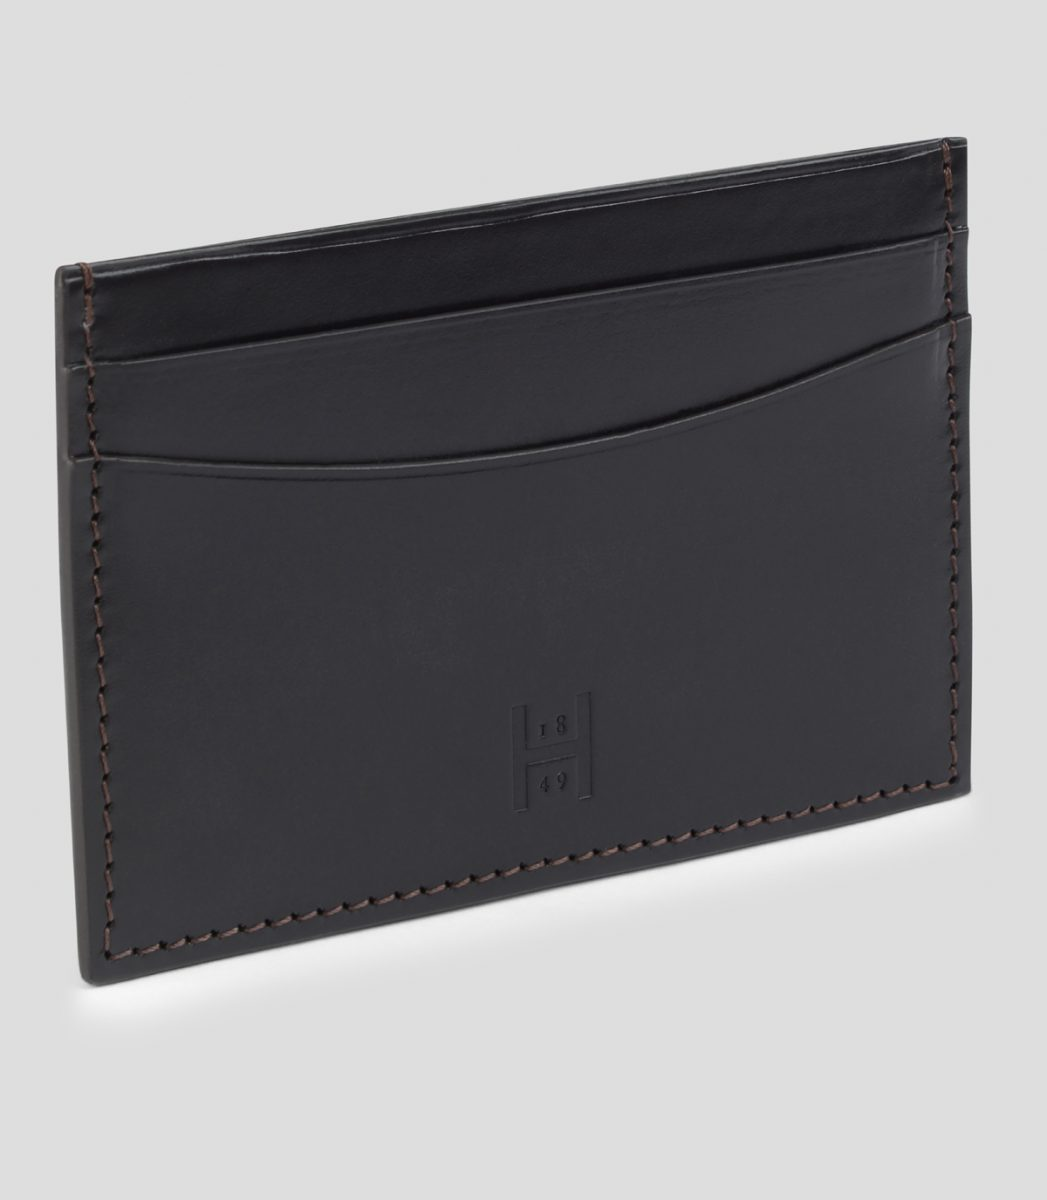 9abfee25278a Declutter your wallet with this matching card case for the perfect way to  compartmentalize.